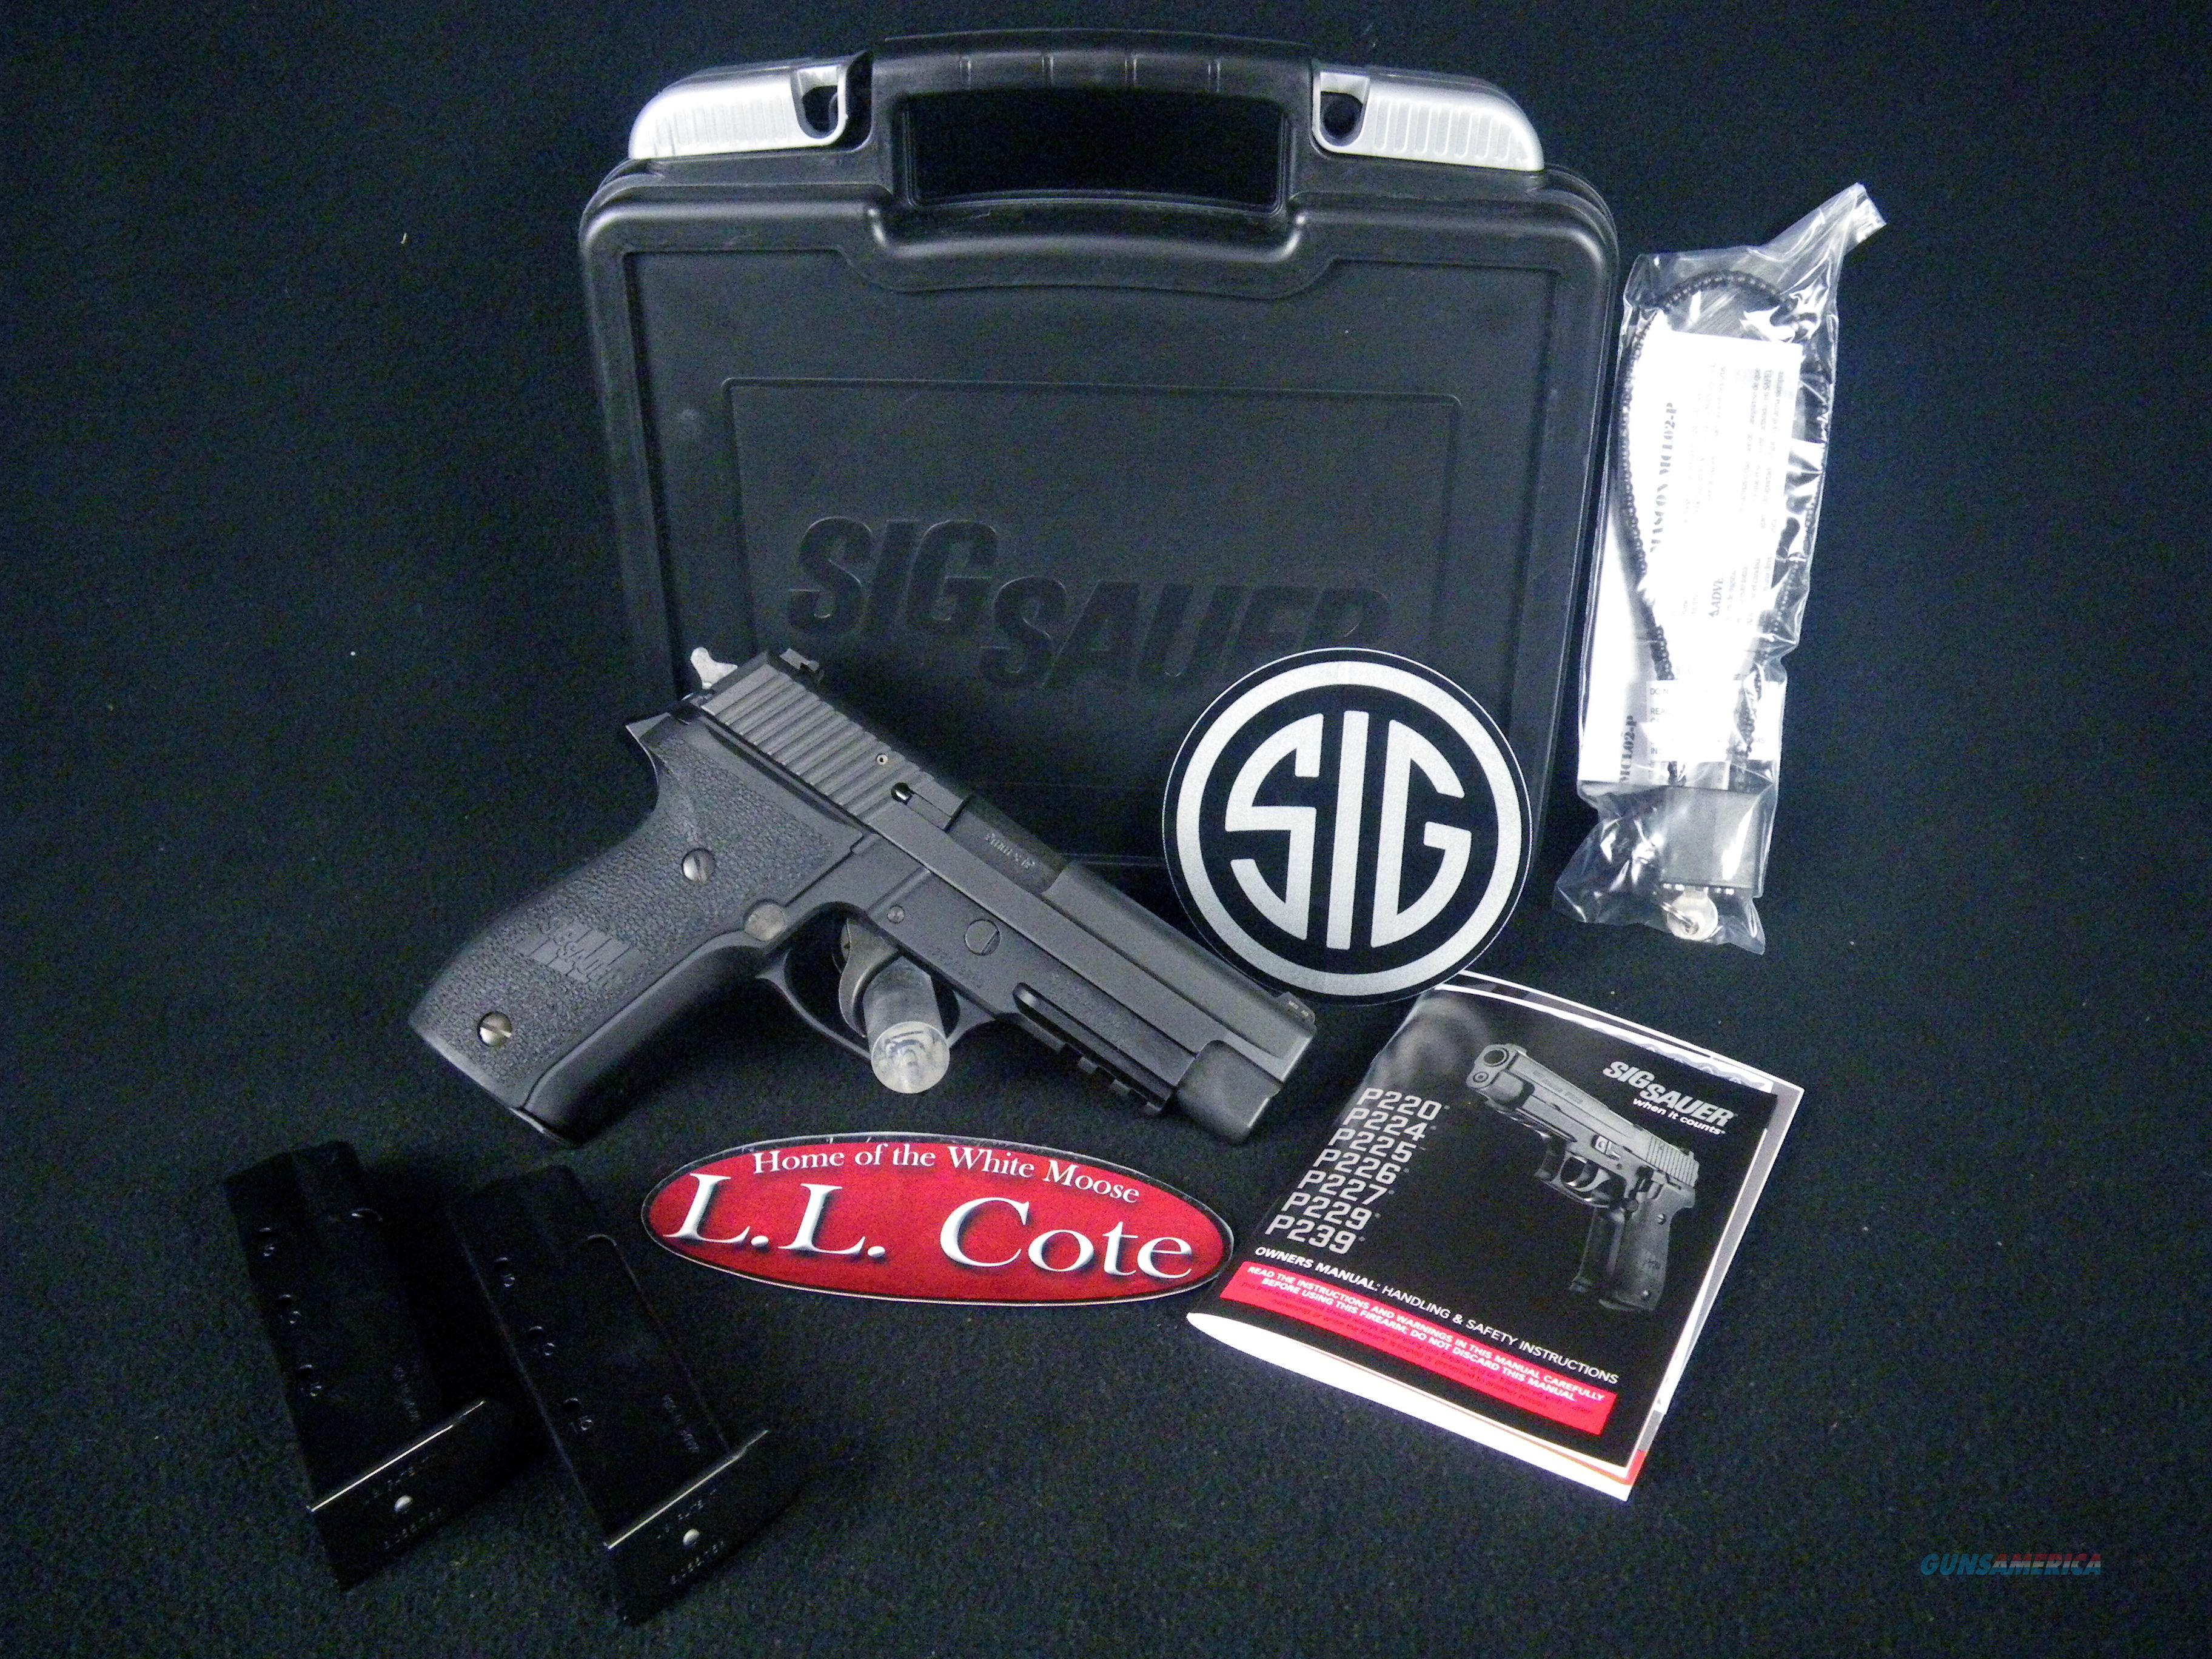 "Sig Sauer P226 MK-25 Full Size 9mm 4.4"" NEW MK-25  Guns > Pistols > Sig - Sauer/Sigarms Pistols > P226"